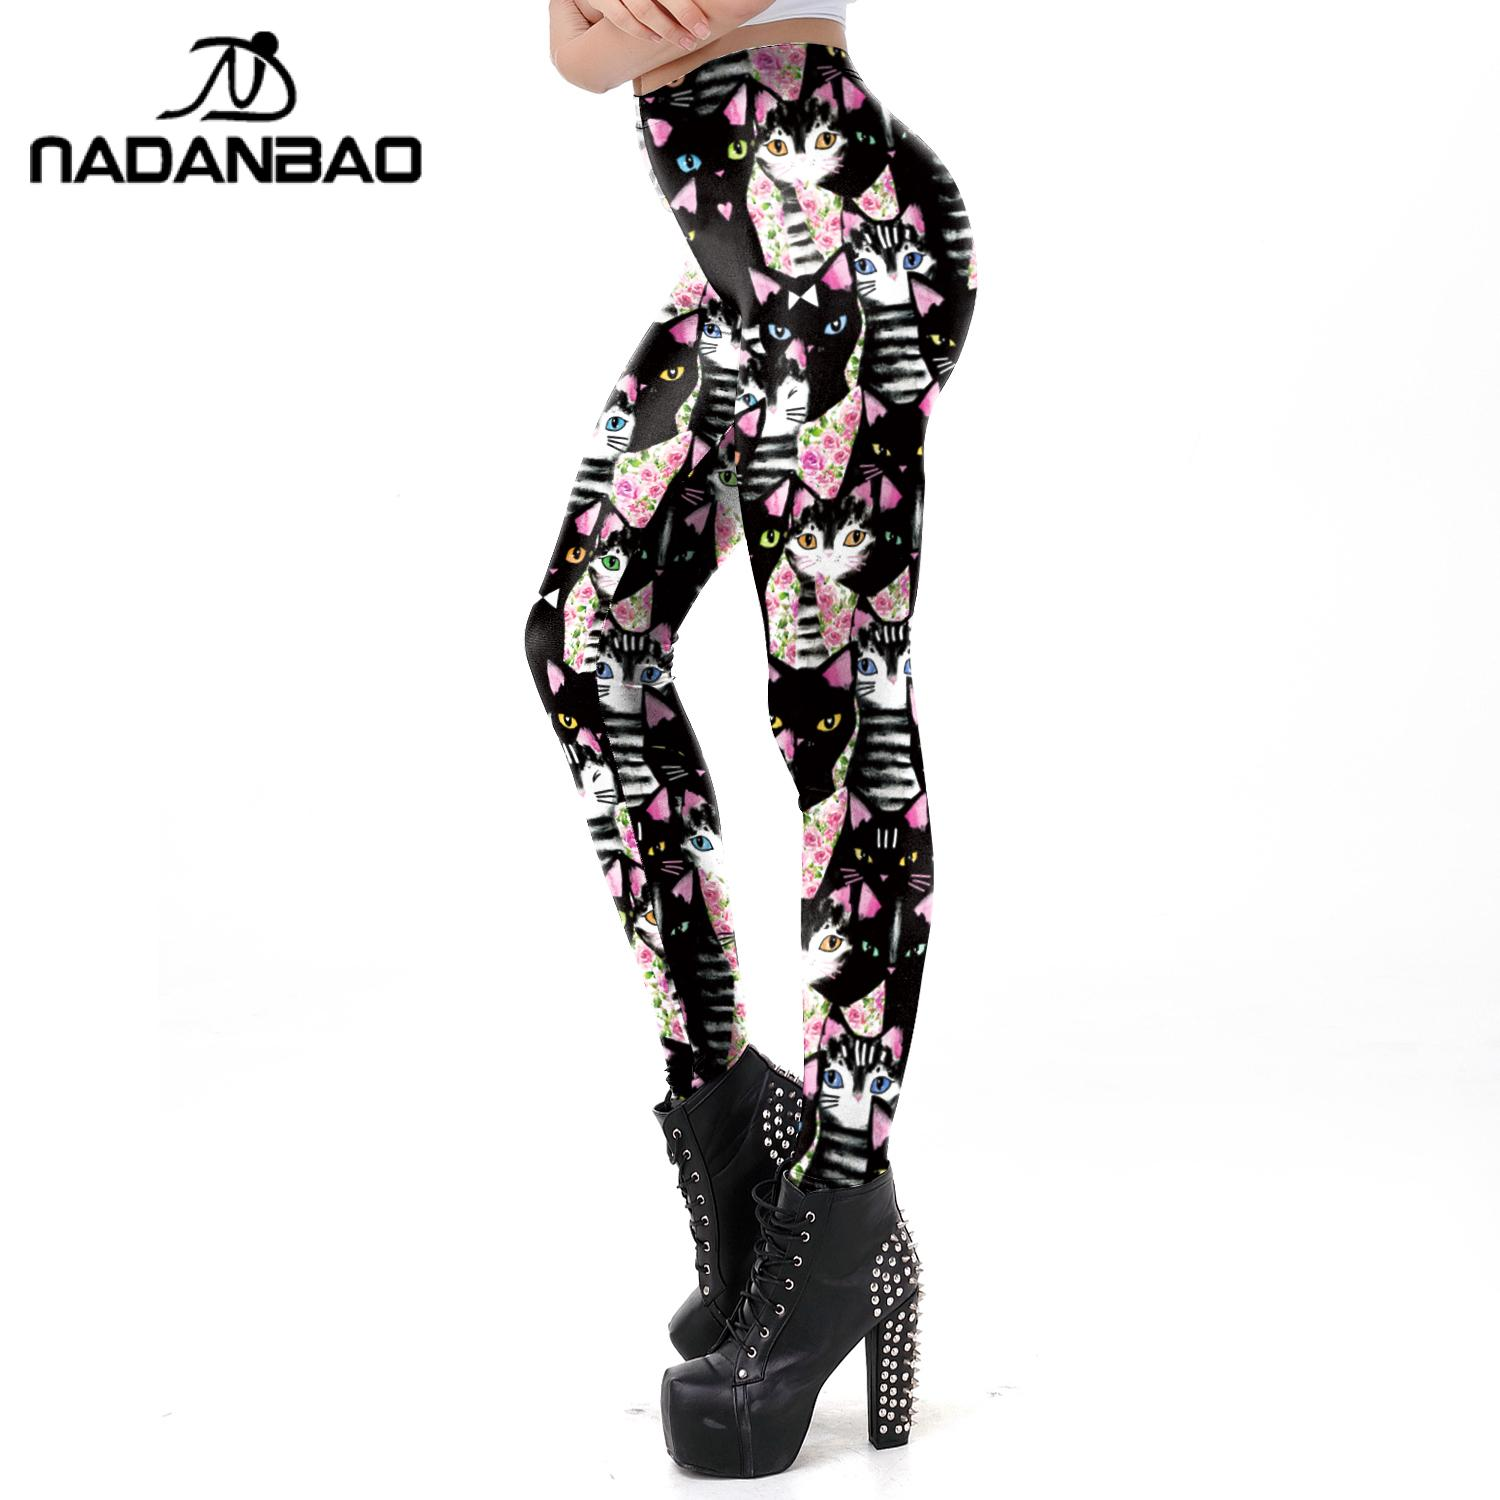 NADANBAO Cute Cartoon Leggings For Women Cat Fitness Pants Slim Lovely Leggins Workout Pants Female Outside Clothing Plus Size